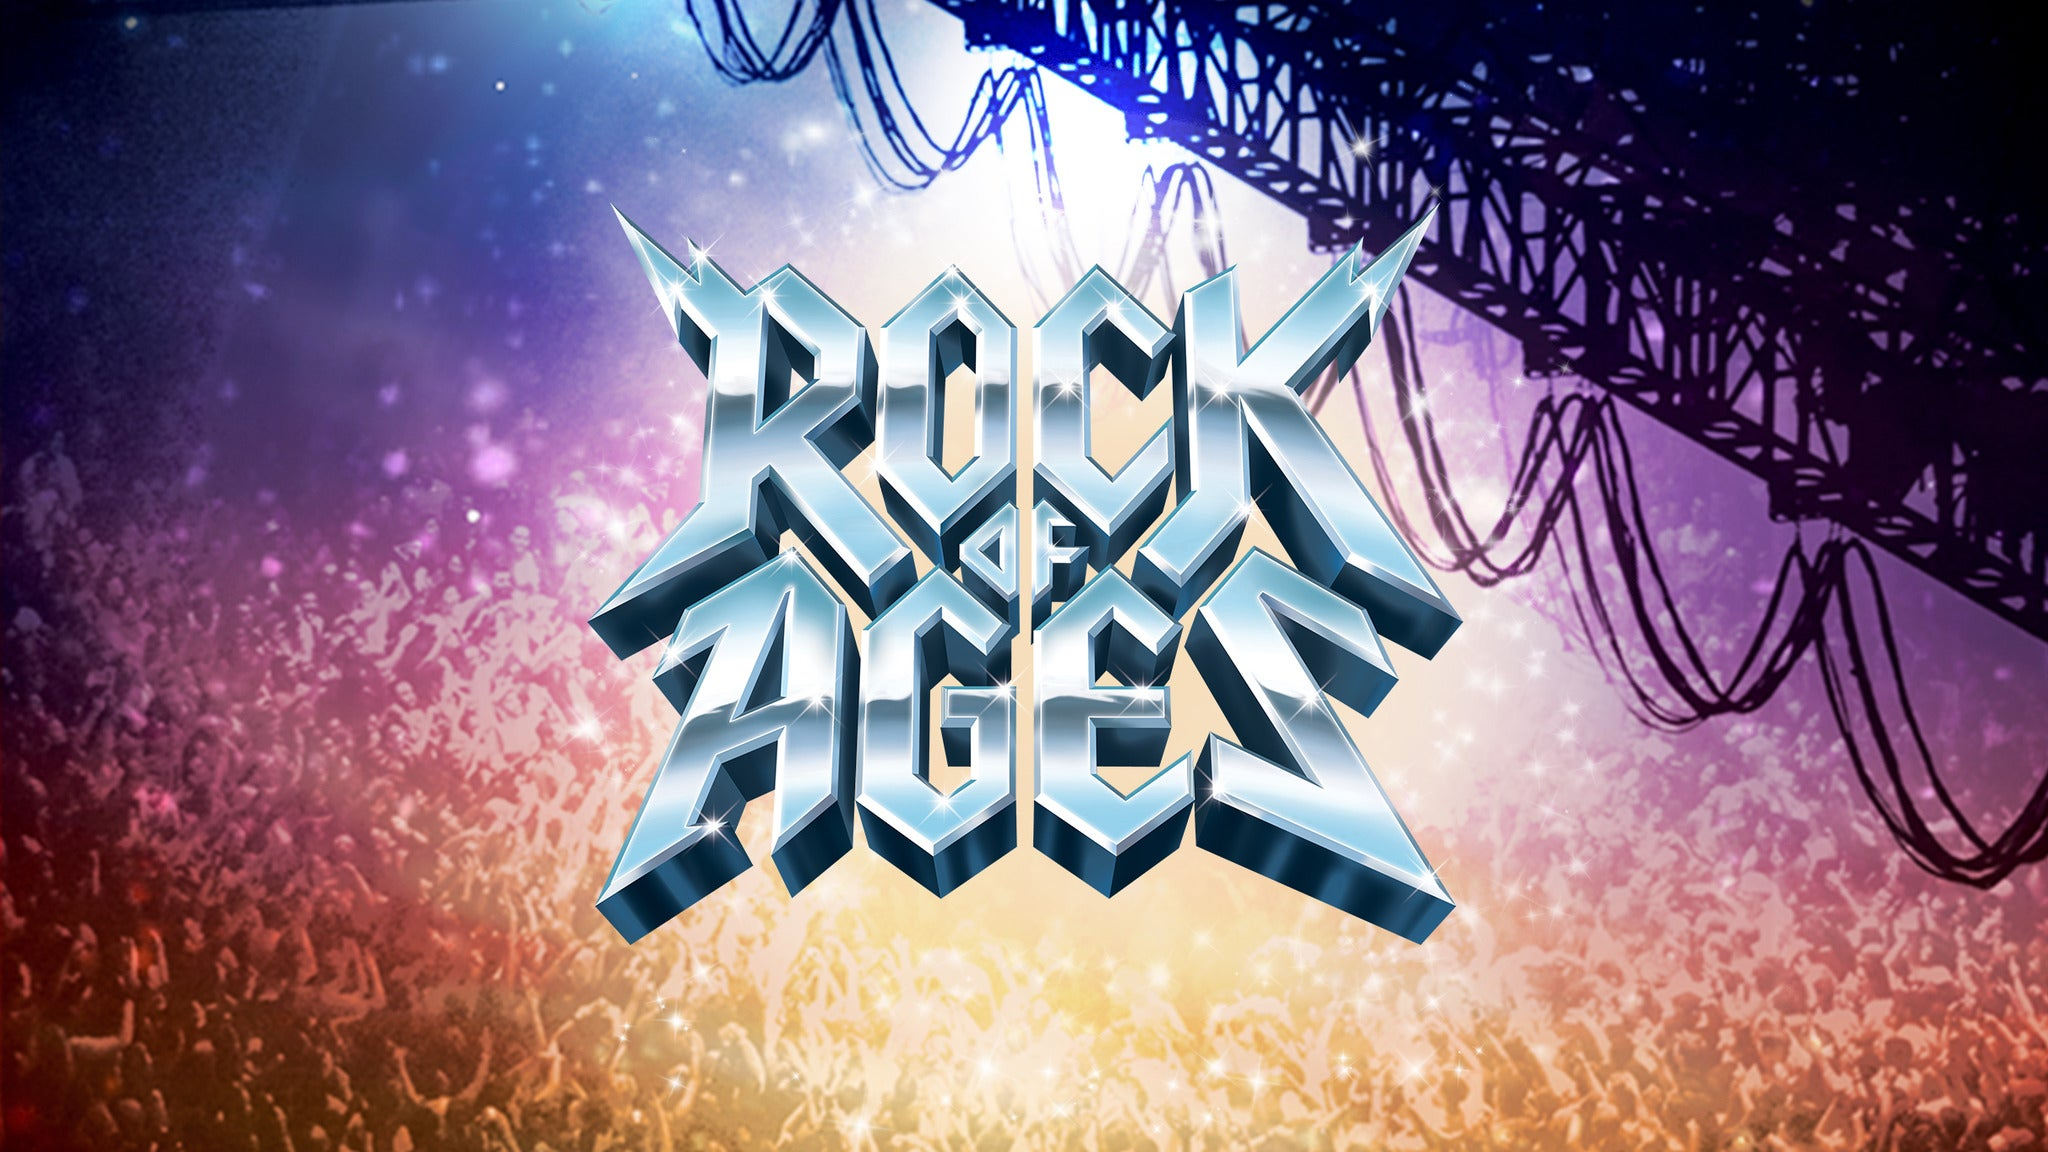 Rock of Ages at Cheyenne Civic Center